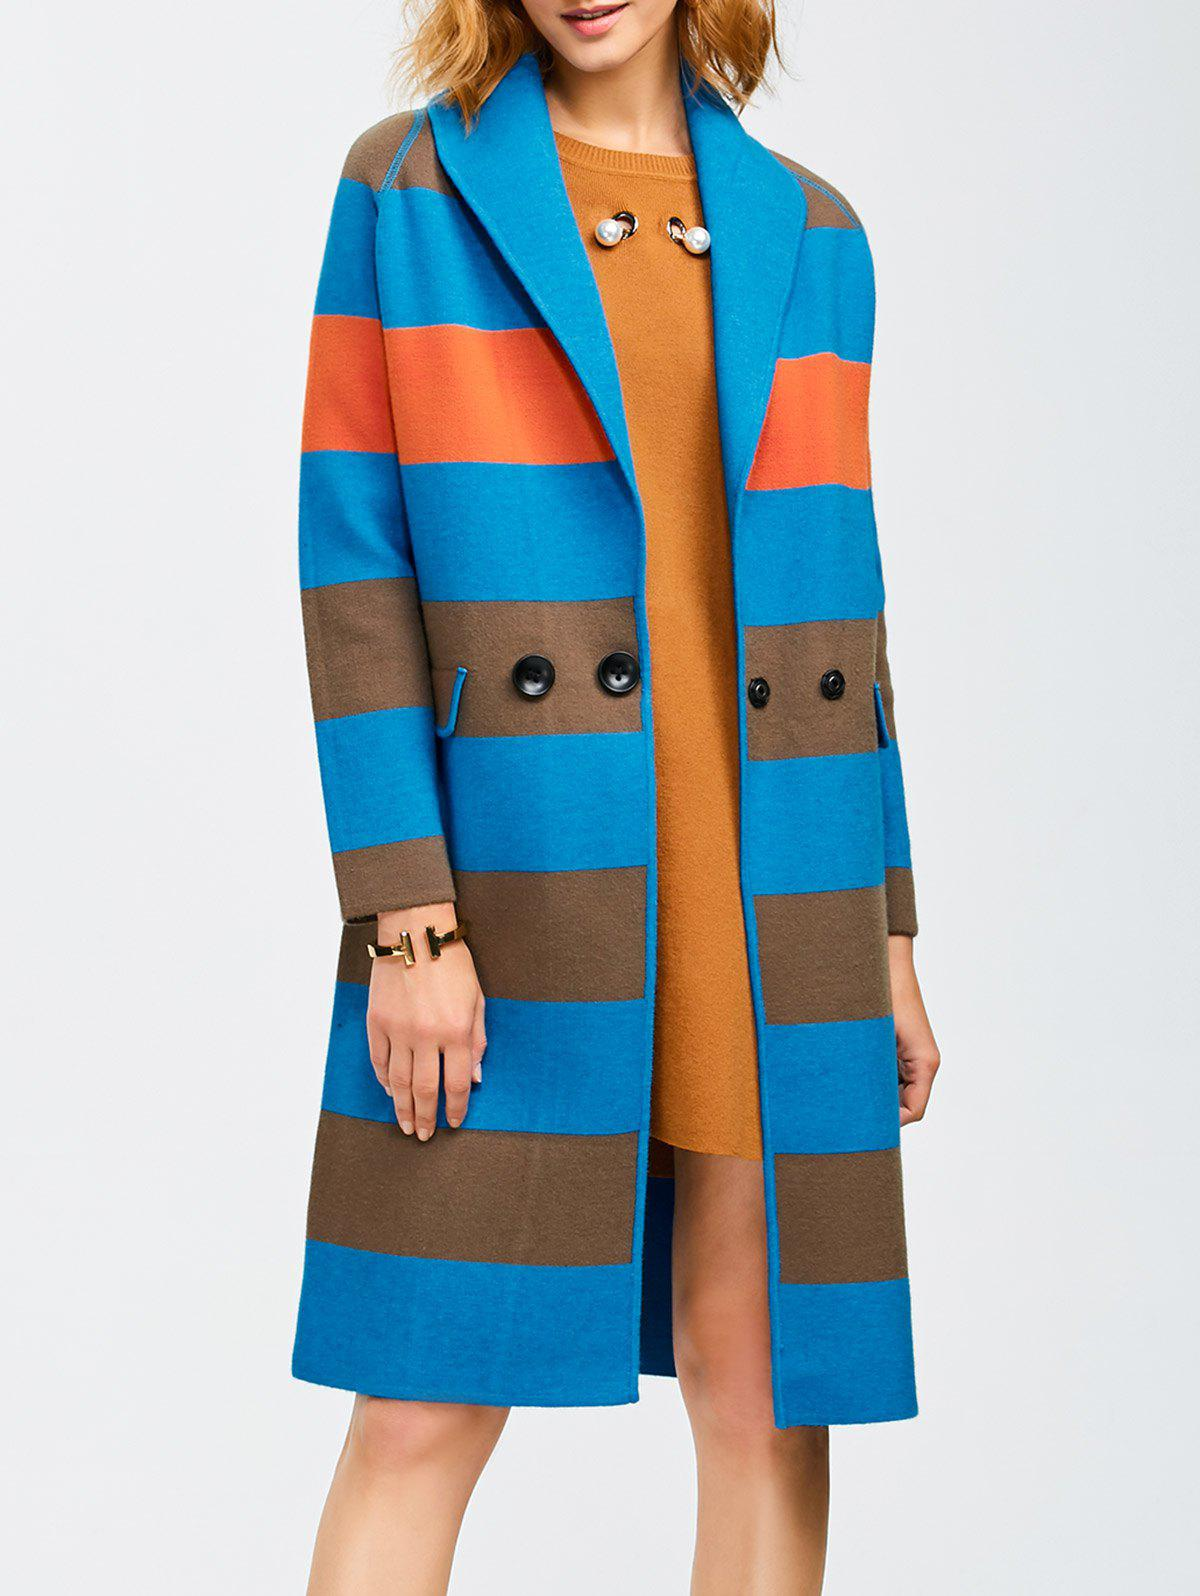 New Shawl Collar Coat With Color Block Design